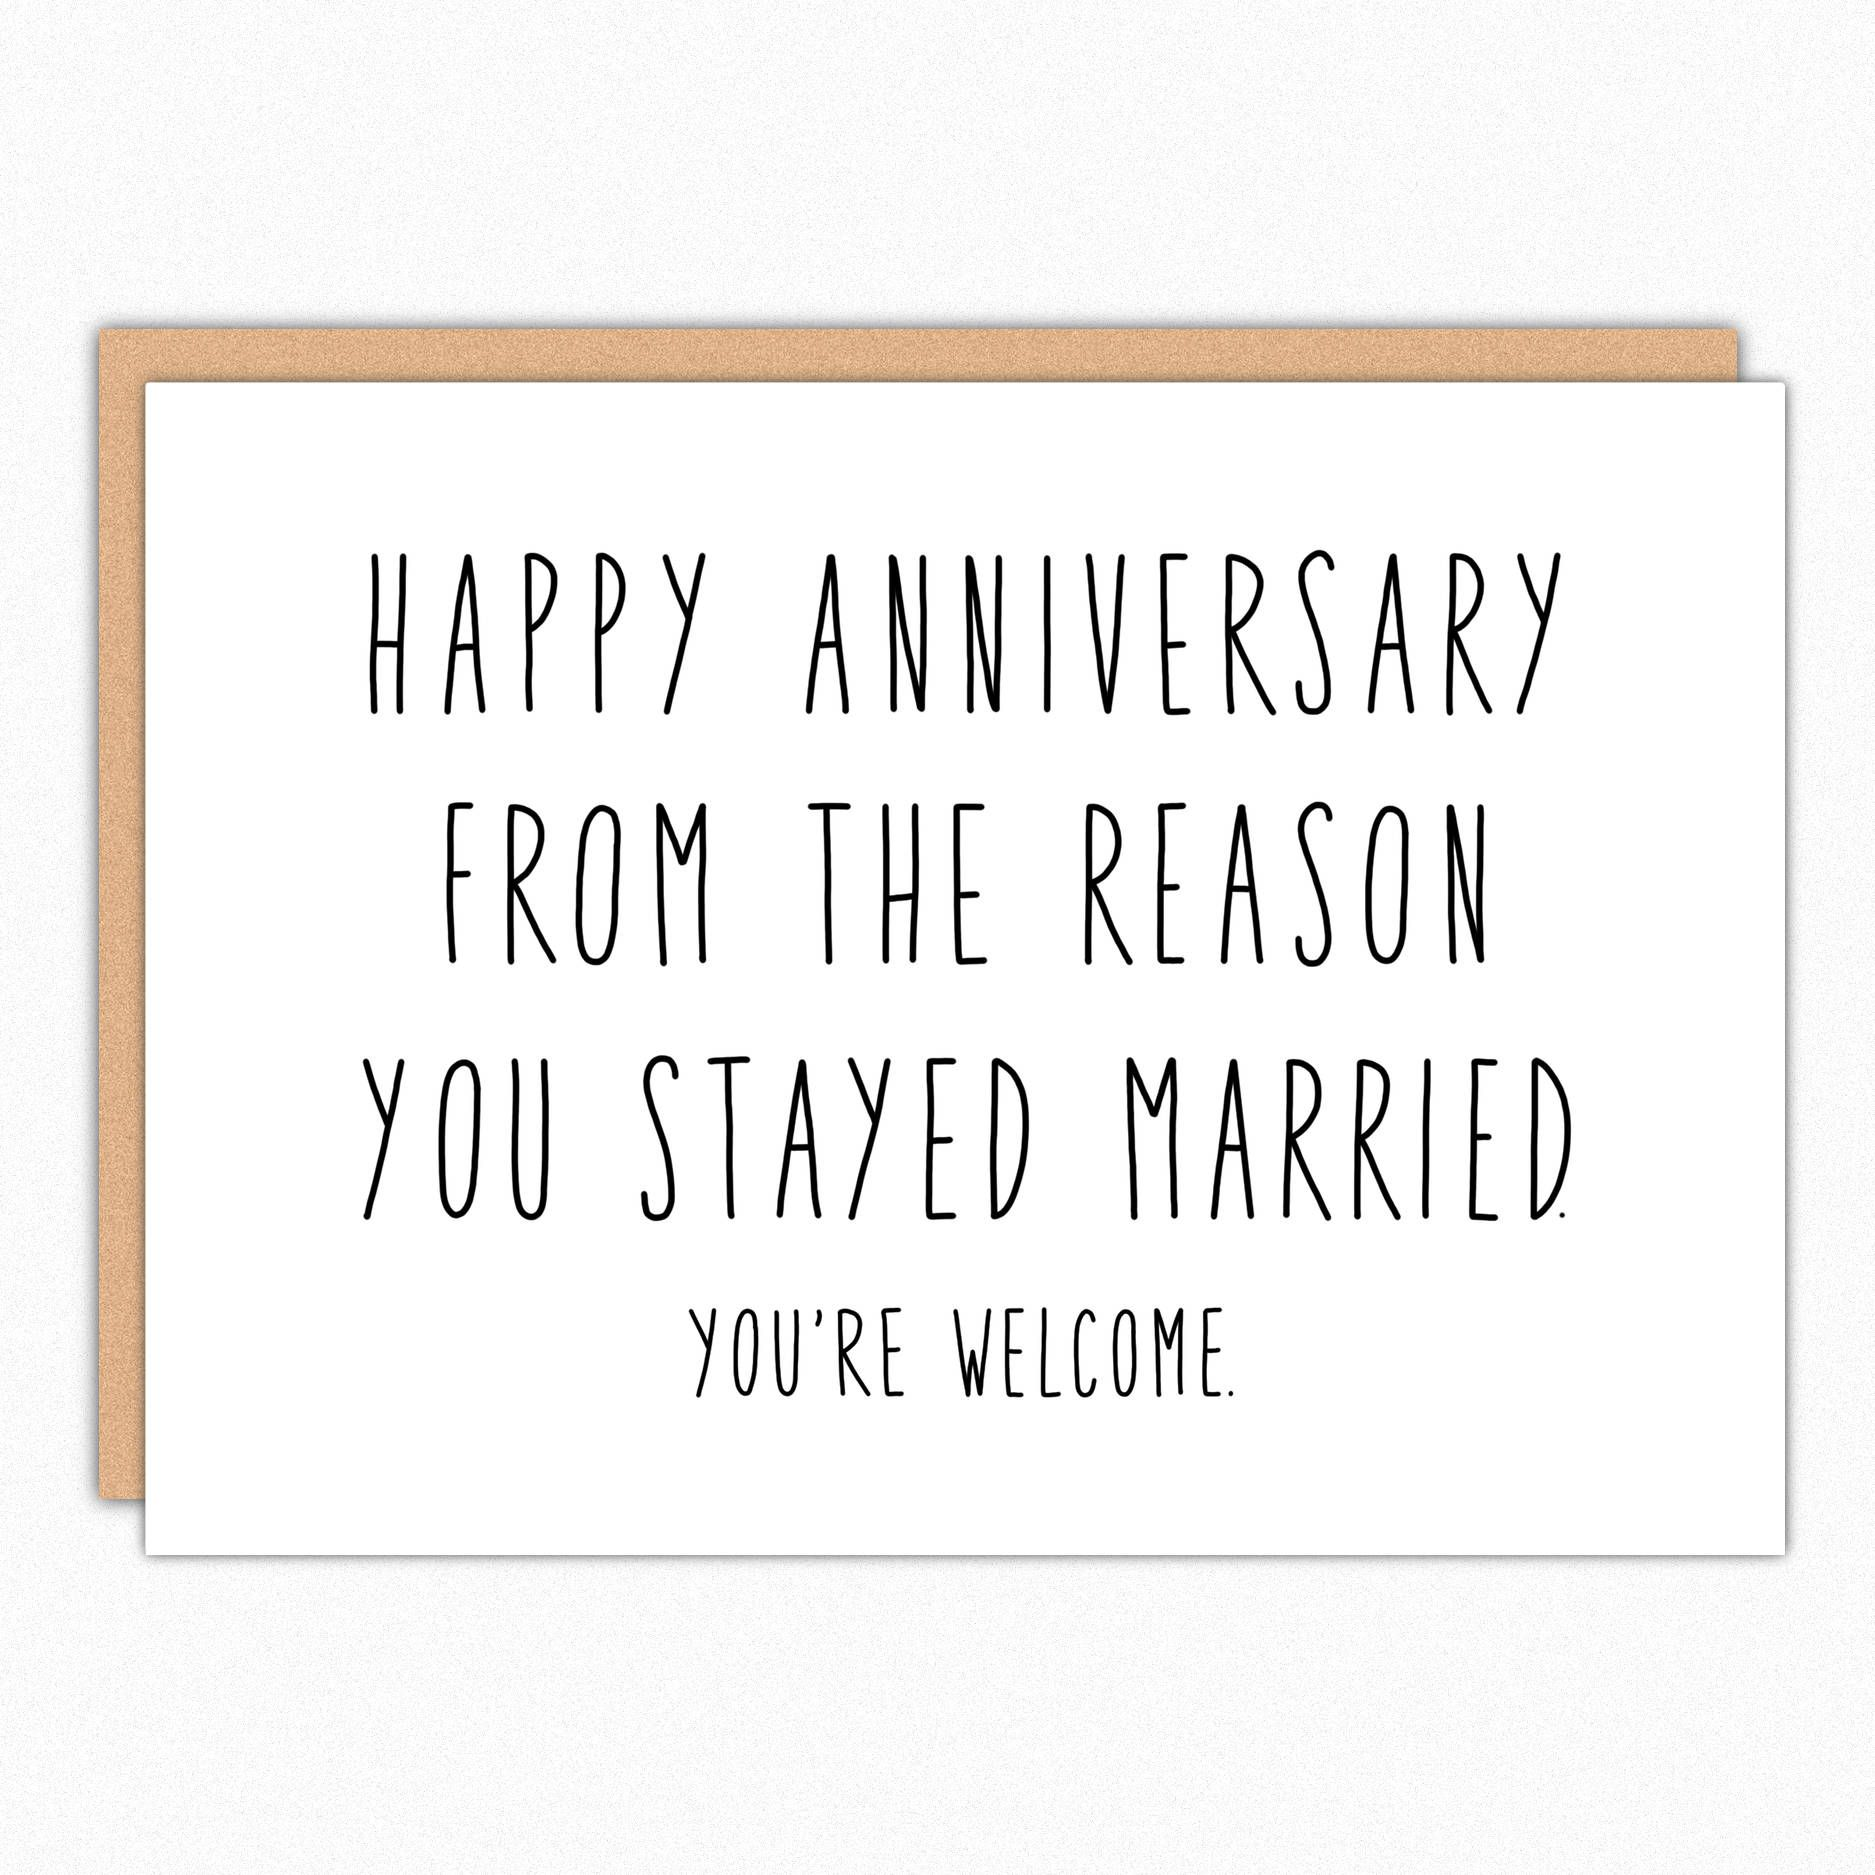 Anniversary card for parents happy anniversary parents funny anniversary card for parents happy anniversary parents funny anniversary card parents sarcastic humor m4hsunfo